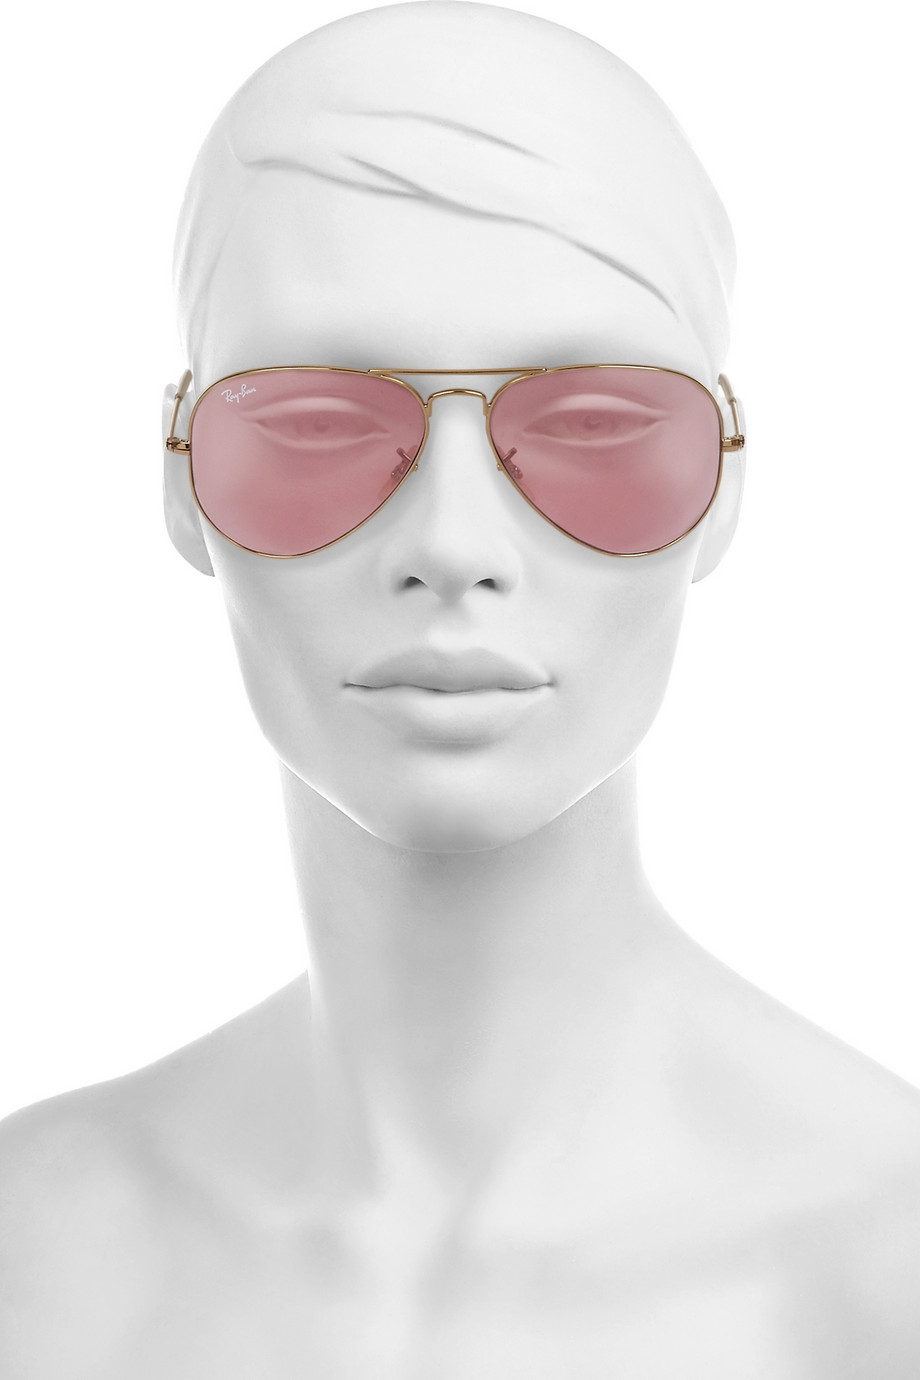 Maui Jim Warranty >> Ray-Ban Aviator Mirrored Metal Sunglasses in Pink - Lyst